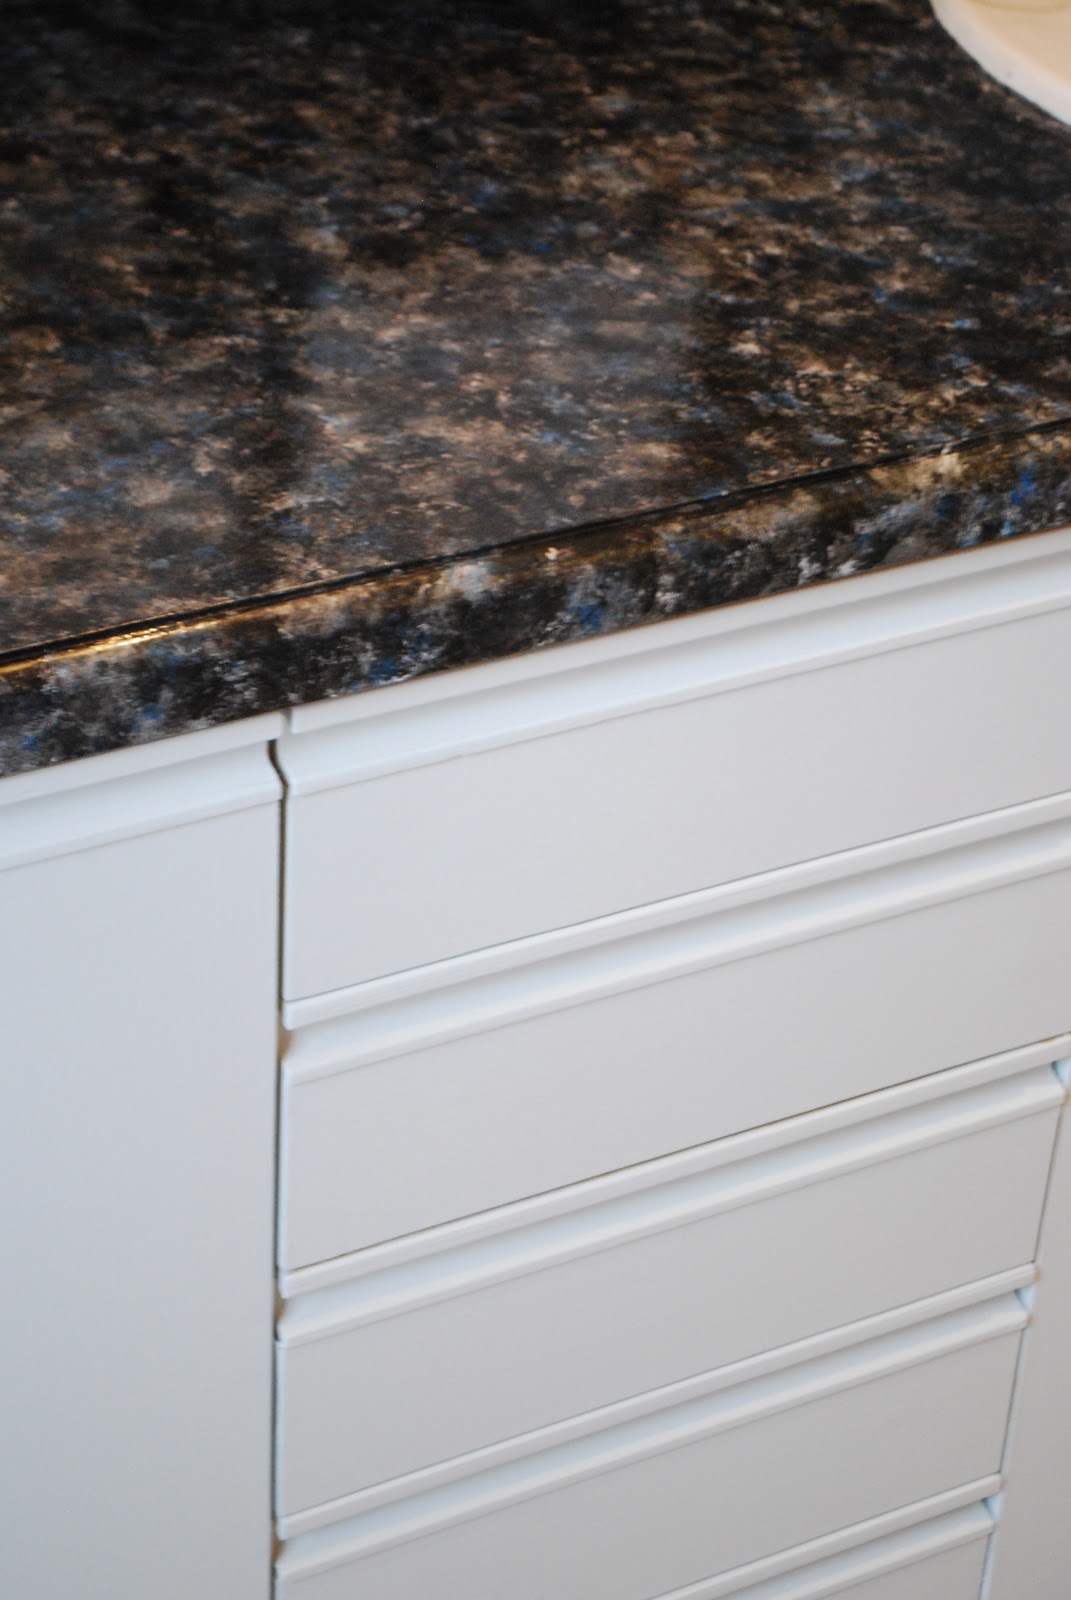 Kara\'s Korner: Tutorial : How to Paint Bathroom Countertops to Look ...